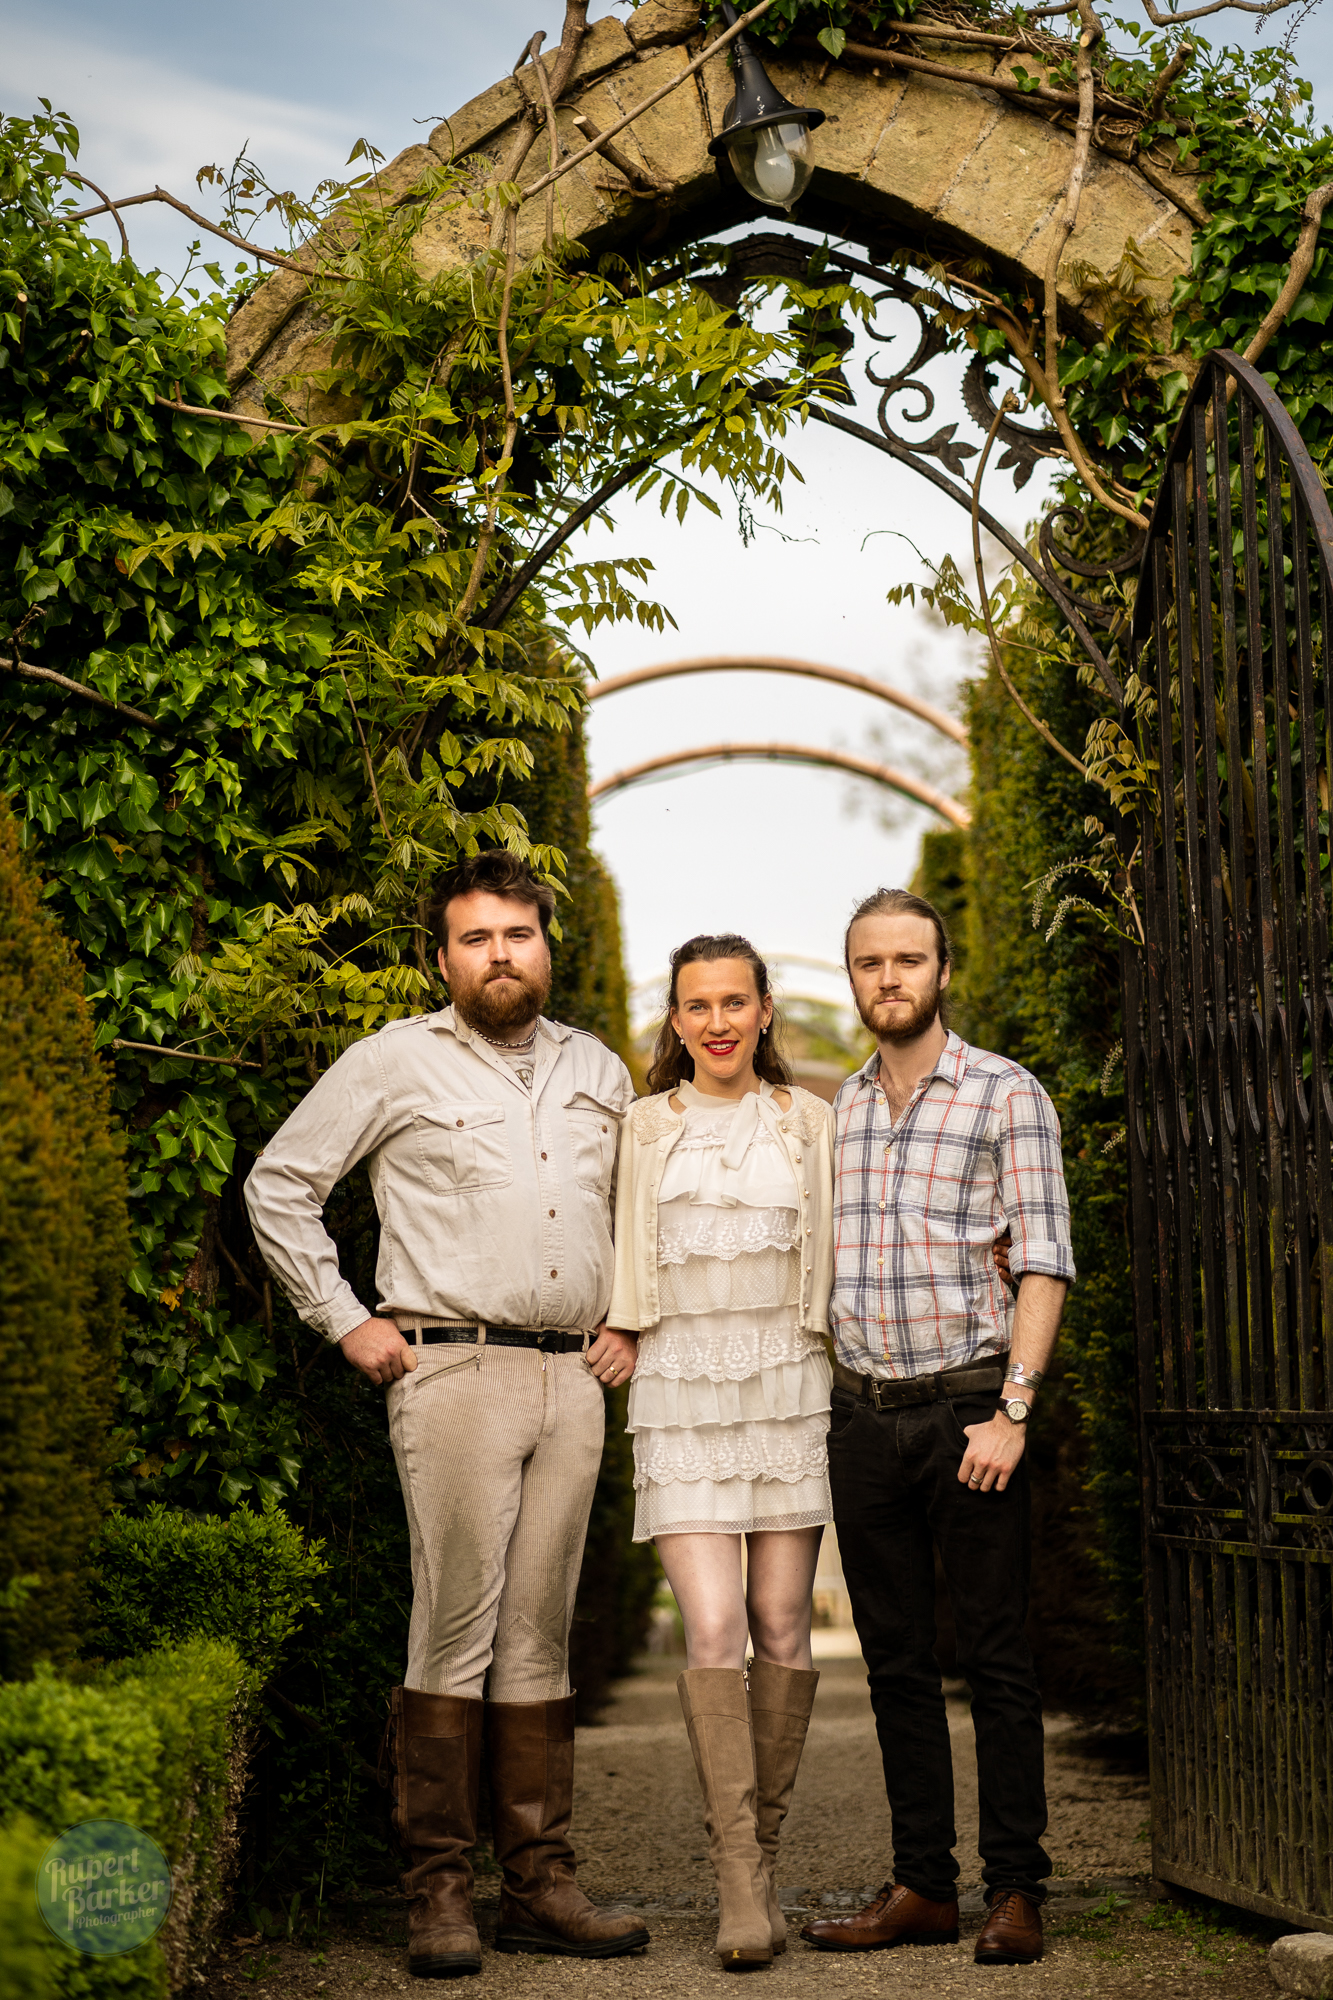 The Pollards Abbey House Gardens Portraits New Guardians of the Garden